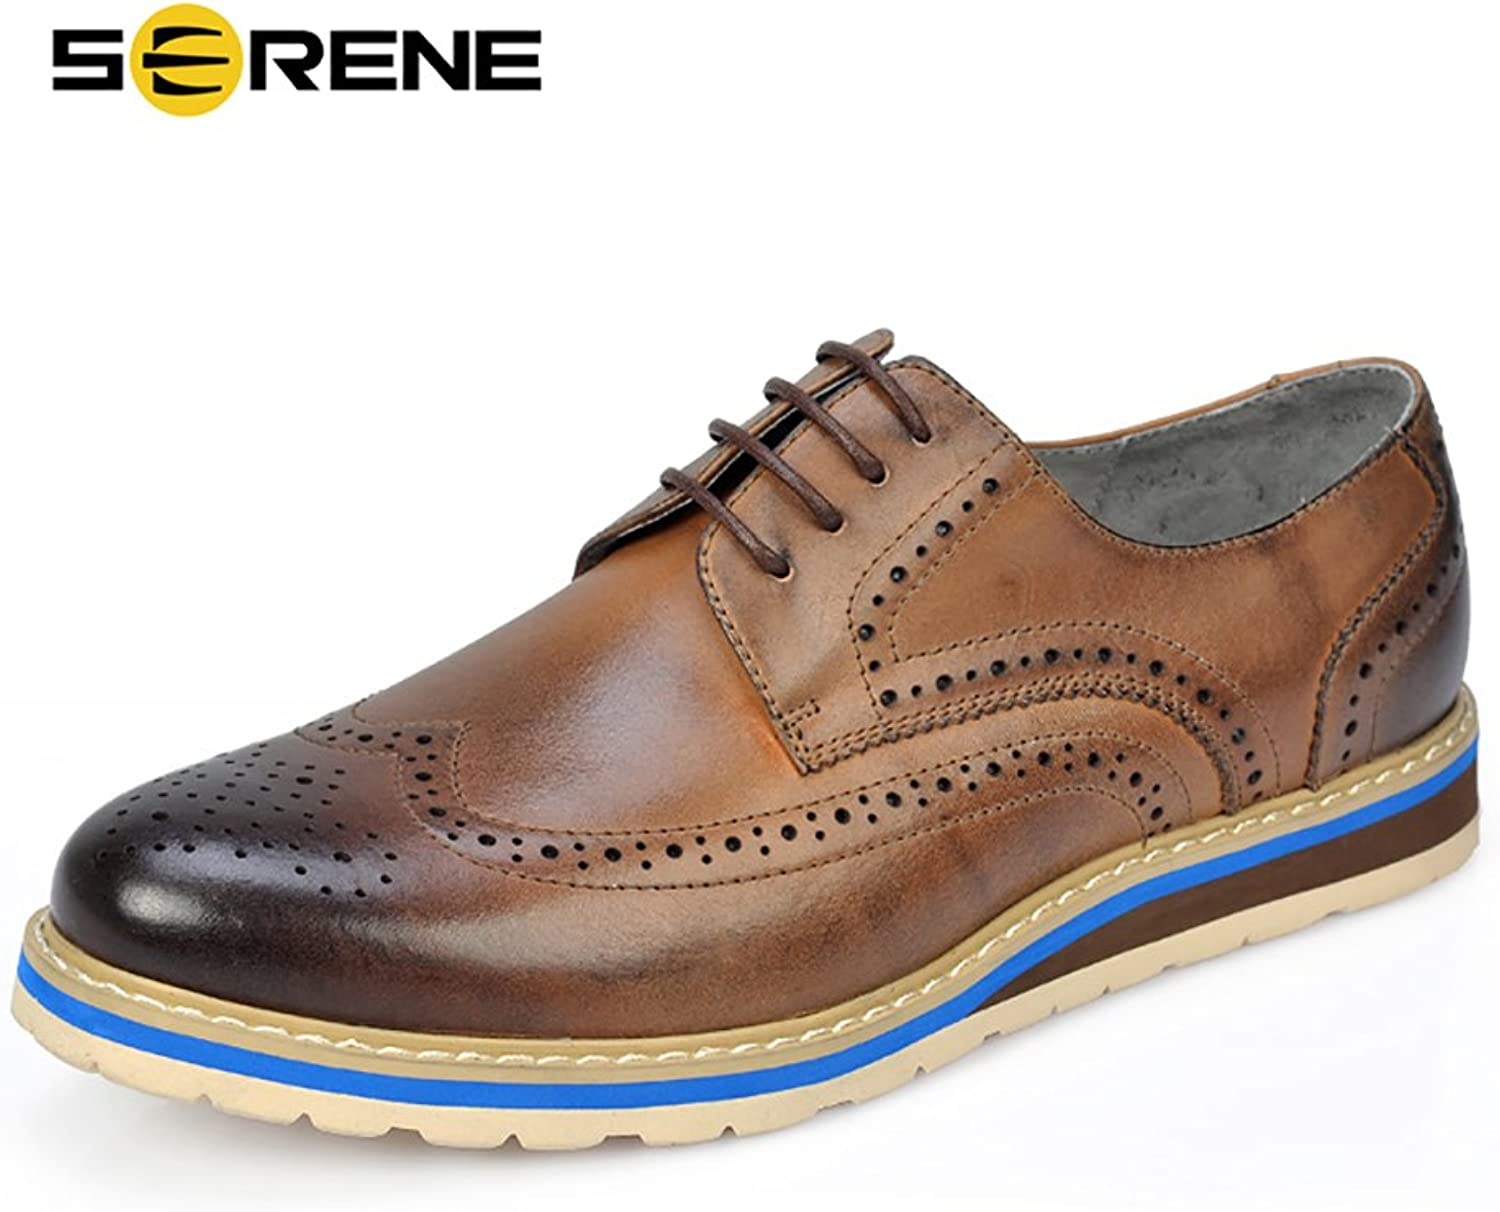 VIISHOW Serene Retro Mens Dress shoes Leather Formal Business Brogue shoes for Men - Brown, bluee